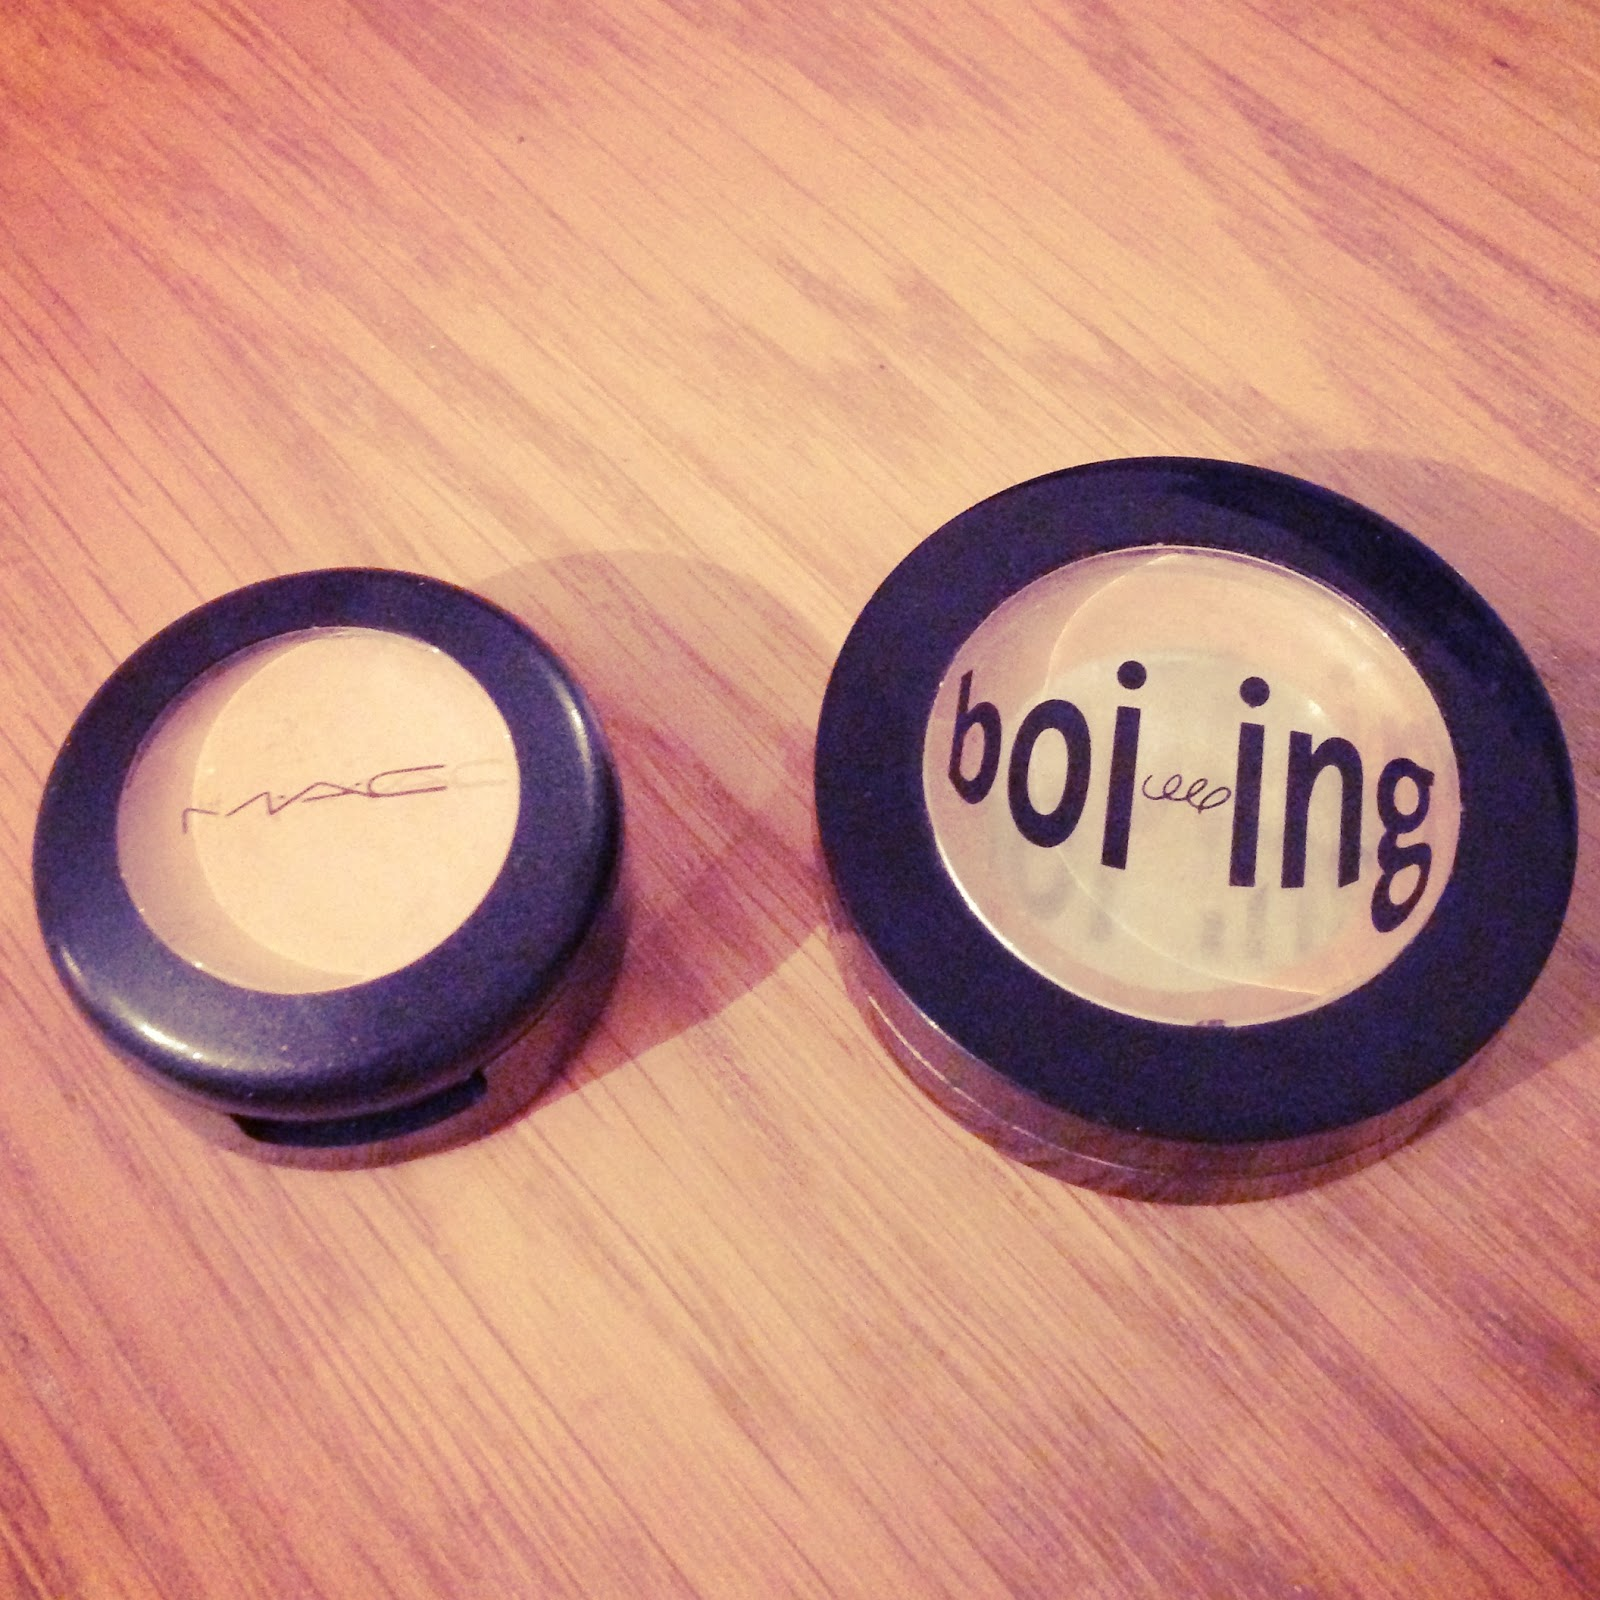 Benefit Boiing vs. Mac Studio Finish Concealer